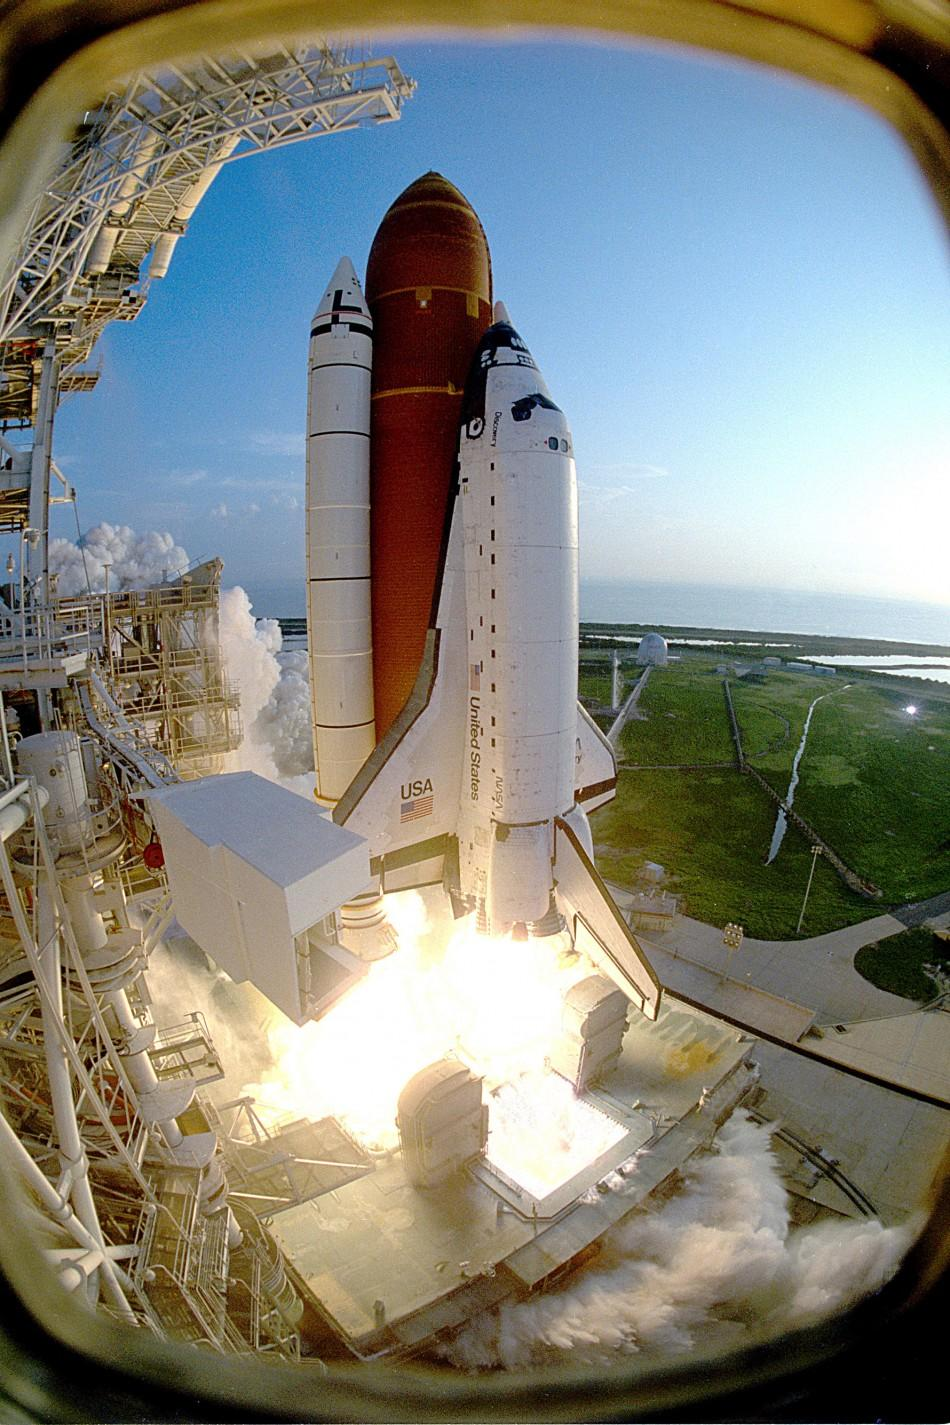 Discovery lifting off from Kennedy Space Center